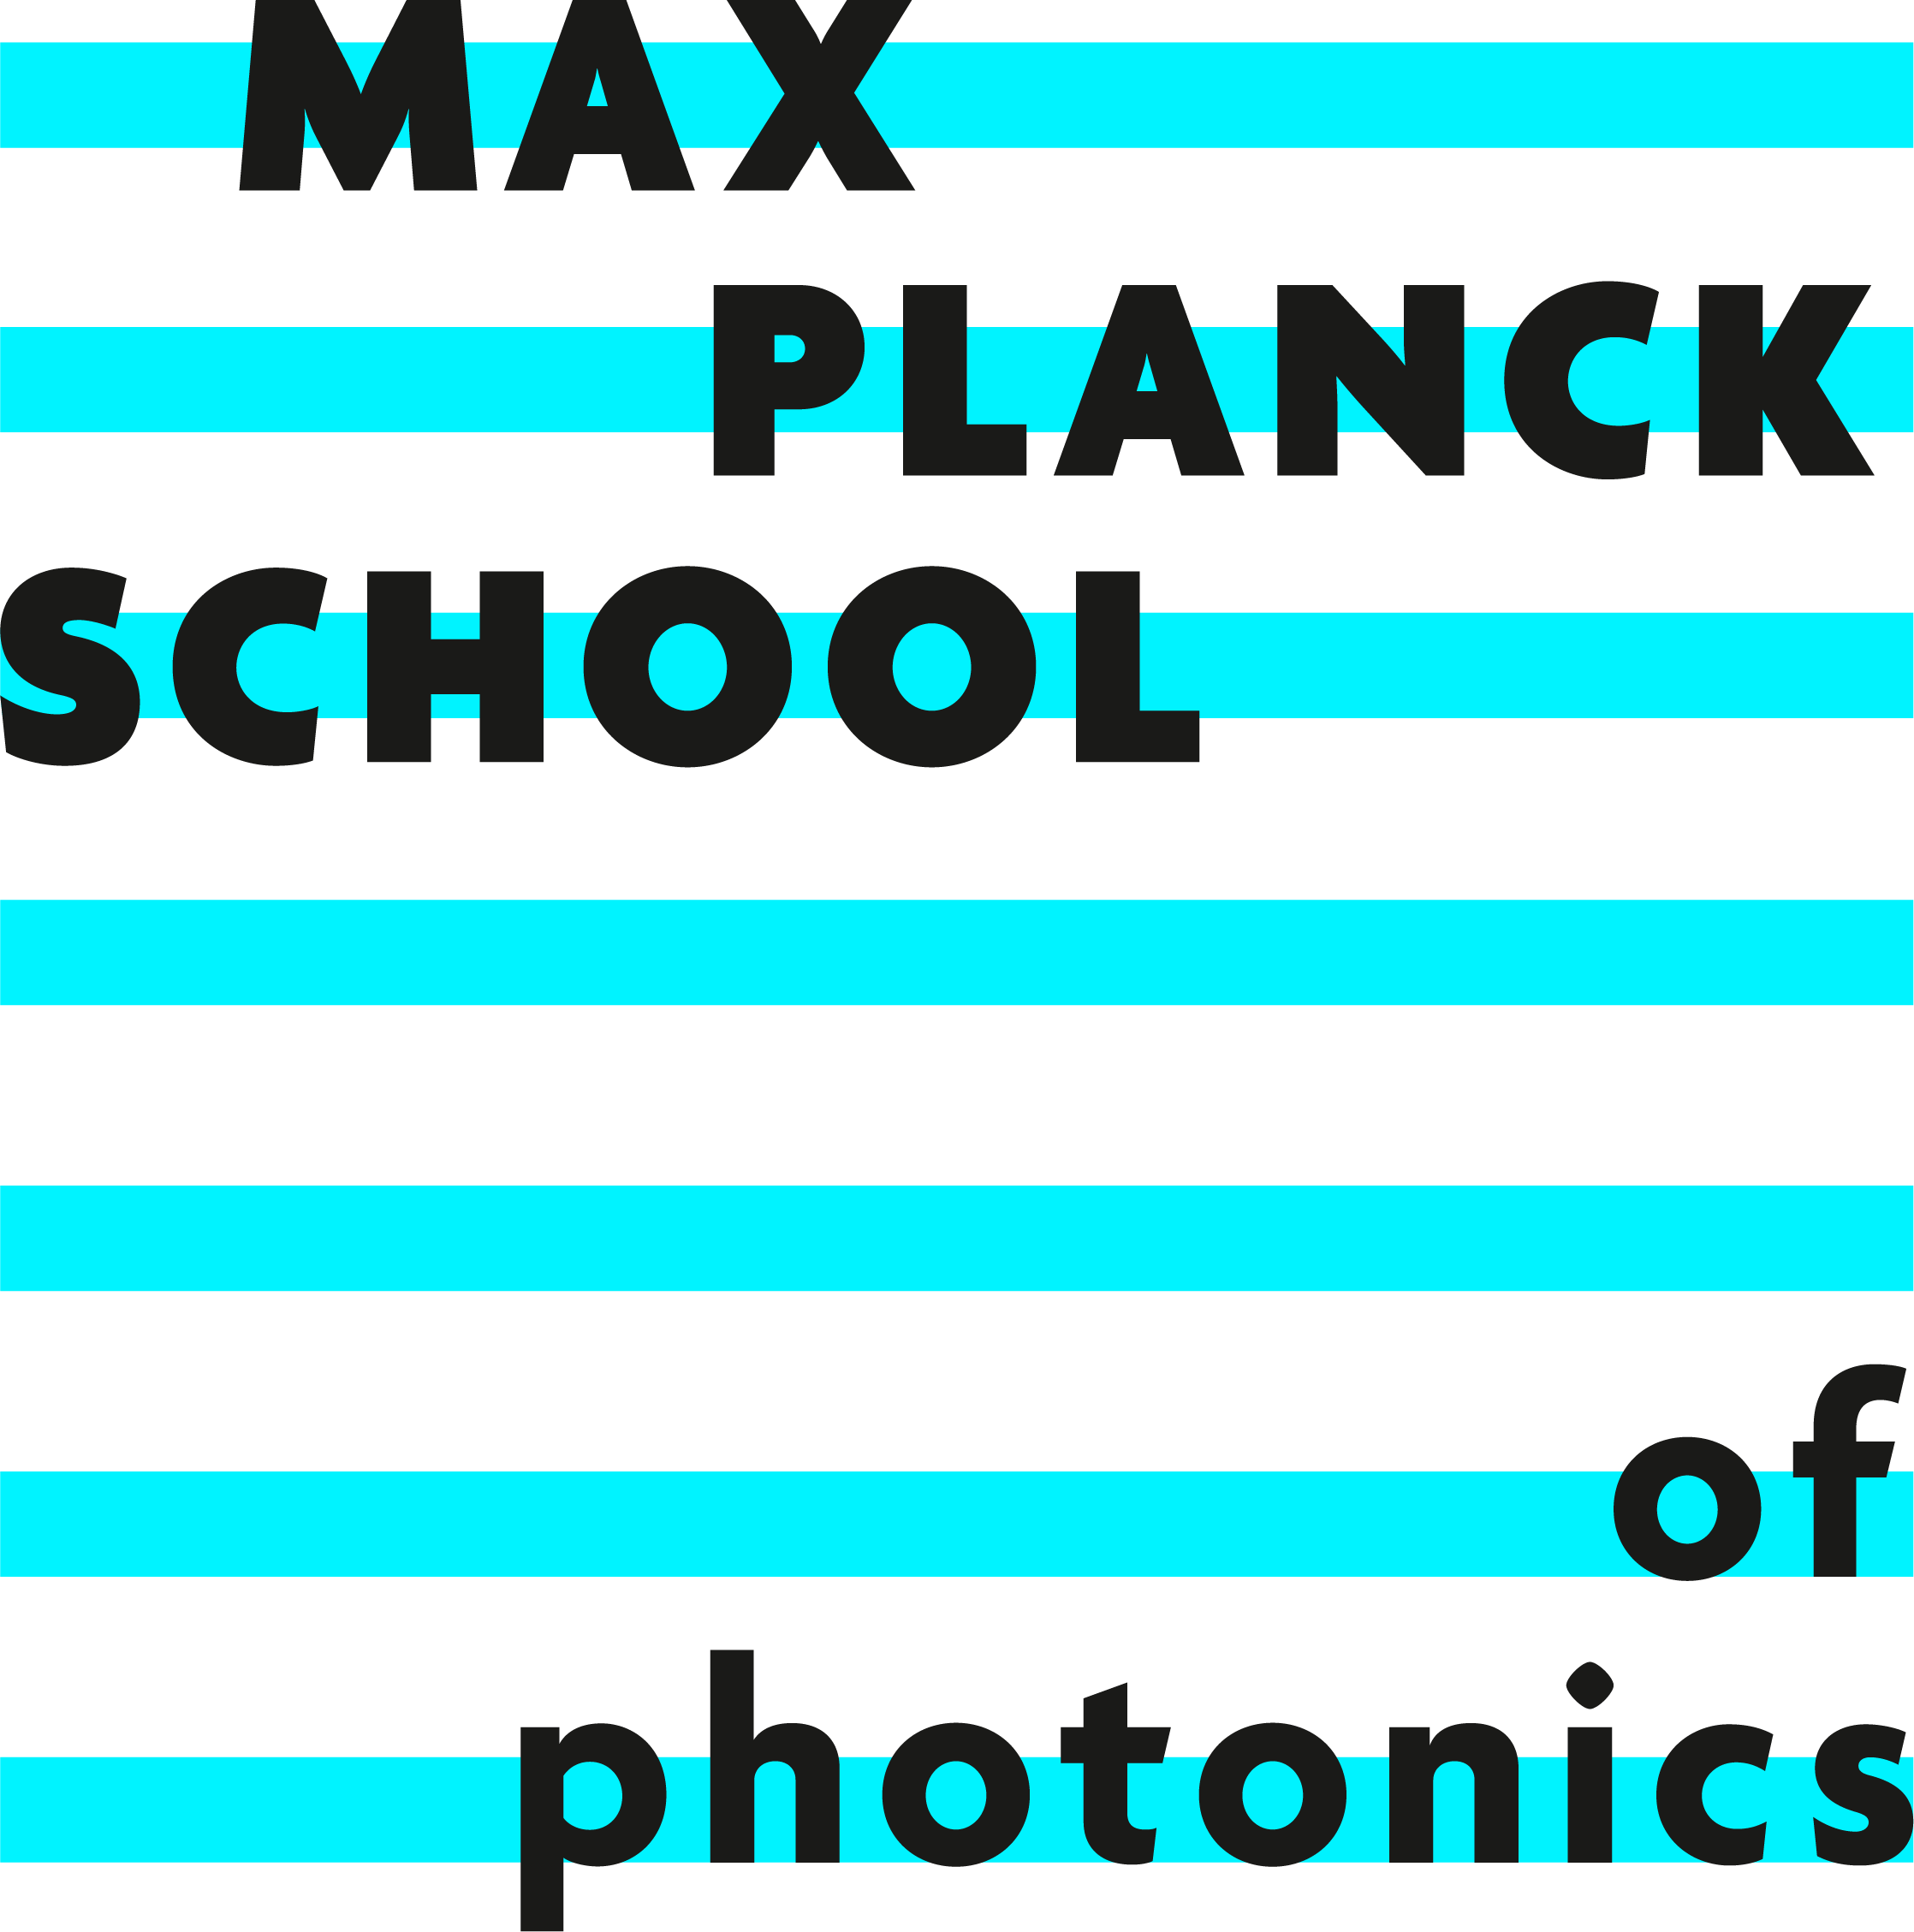 Logo of the Max Planck School of Photonics (MPSP).